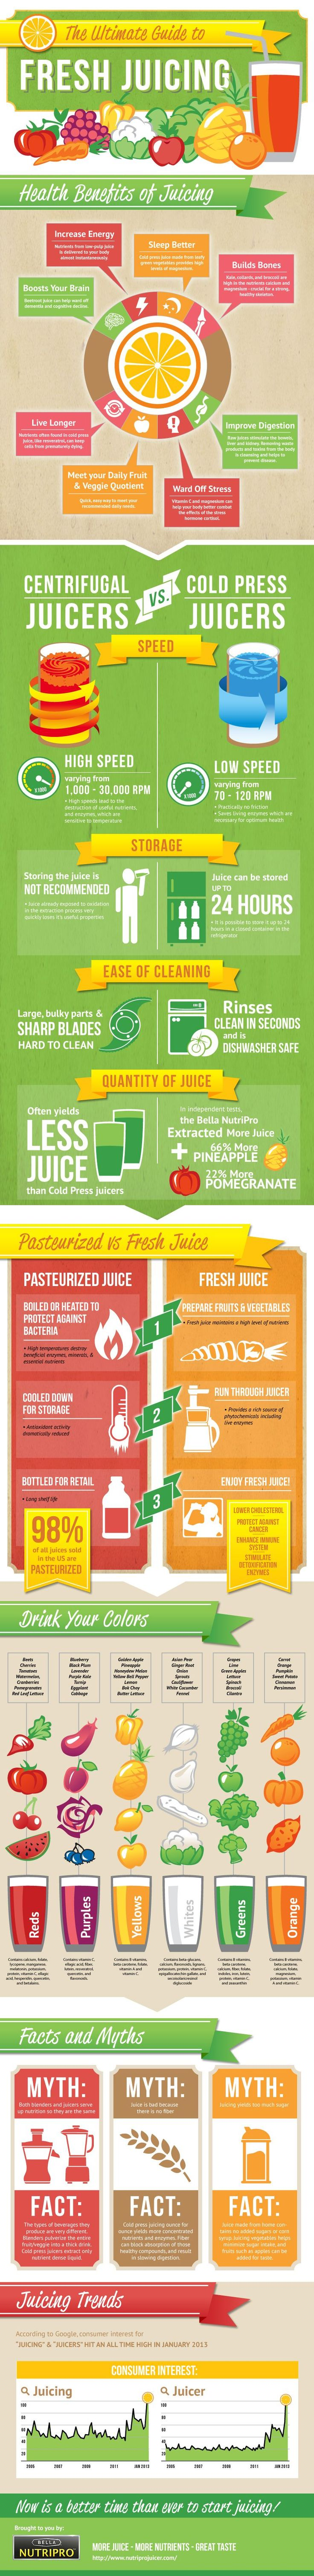 Guide to Juicing